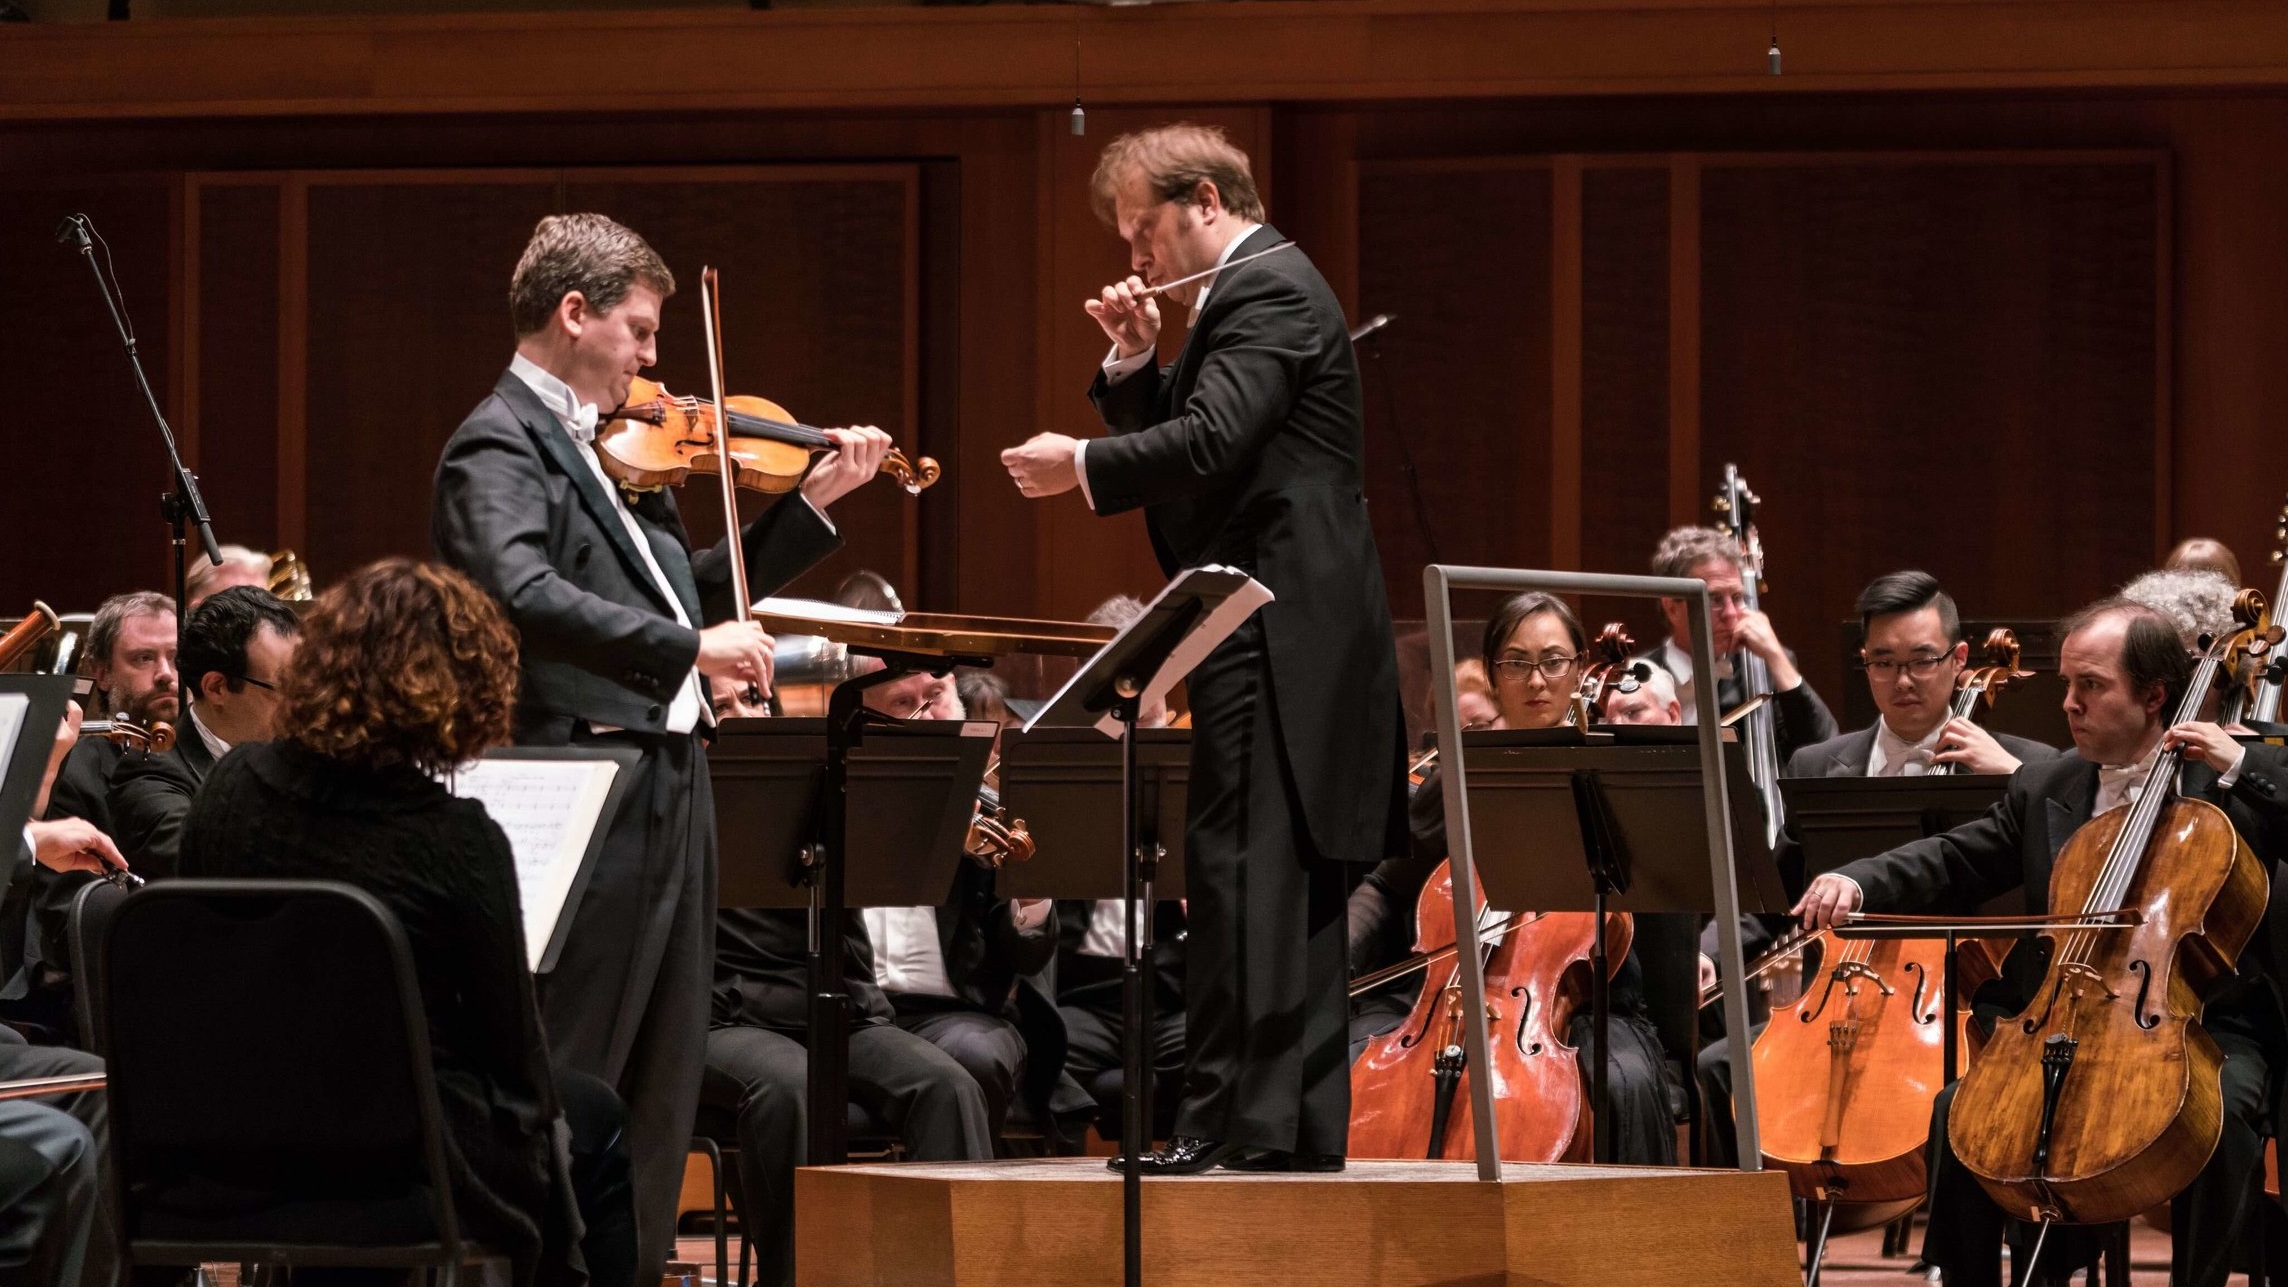 Violinist James Ehnes and Seattle Symphony Music Director Ludovic Morlot during the live performance of Aaron Jay Kernis' Violin Concerto in March 2017. Photo by James Holt.